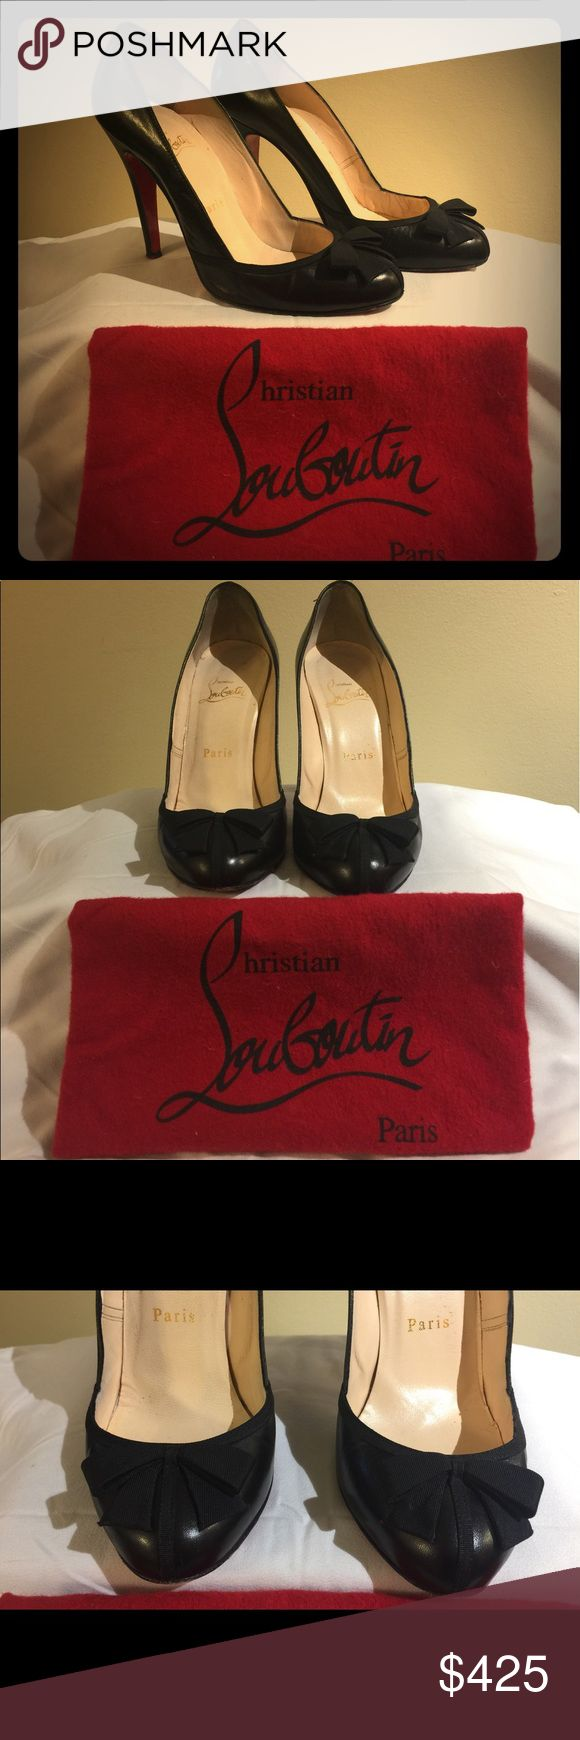 Christian Louboutin Pumps Christian Louboutin Lavallier Black Leather Bow Tie Pumps Christian Louboutin Shoes Heels